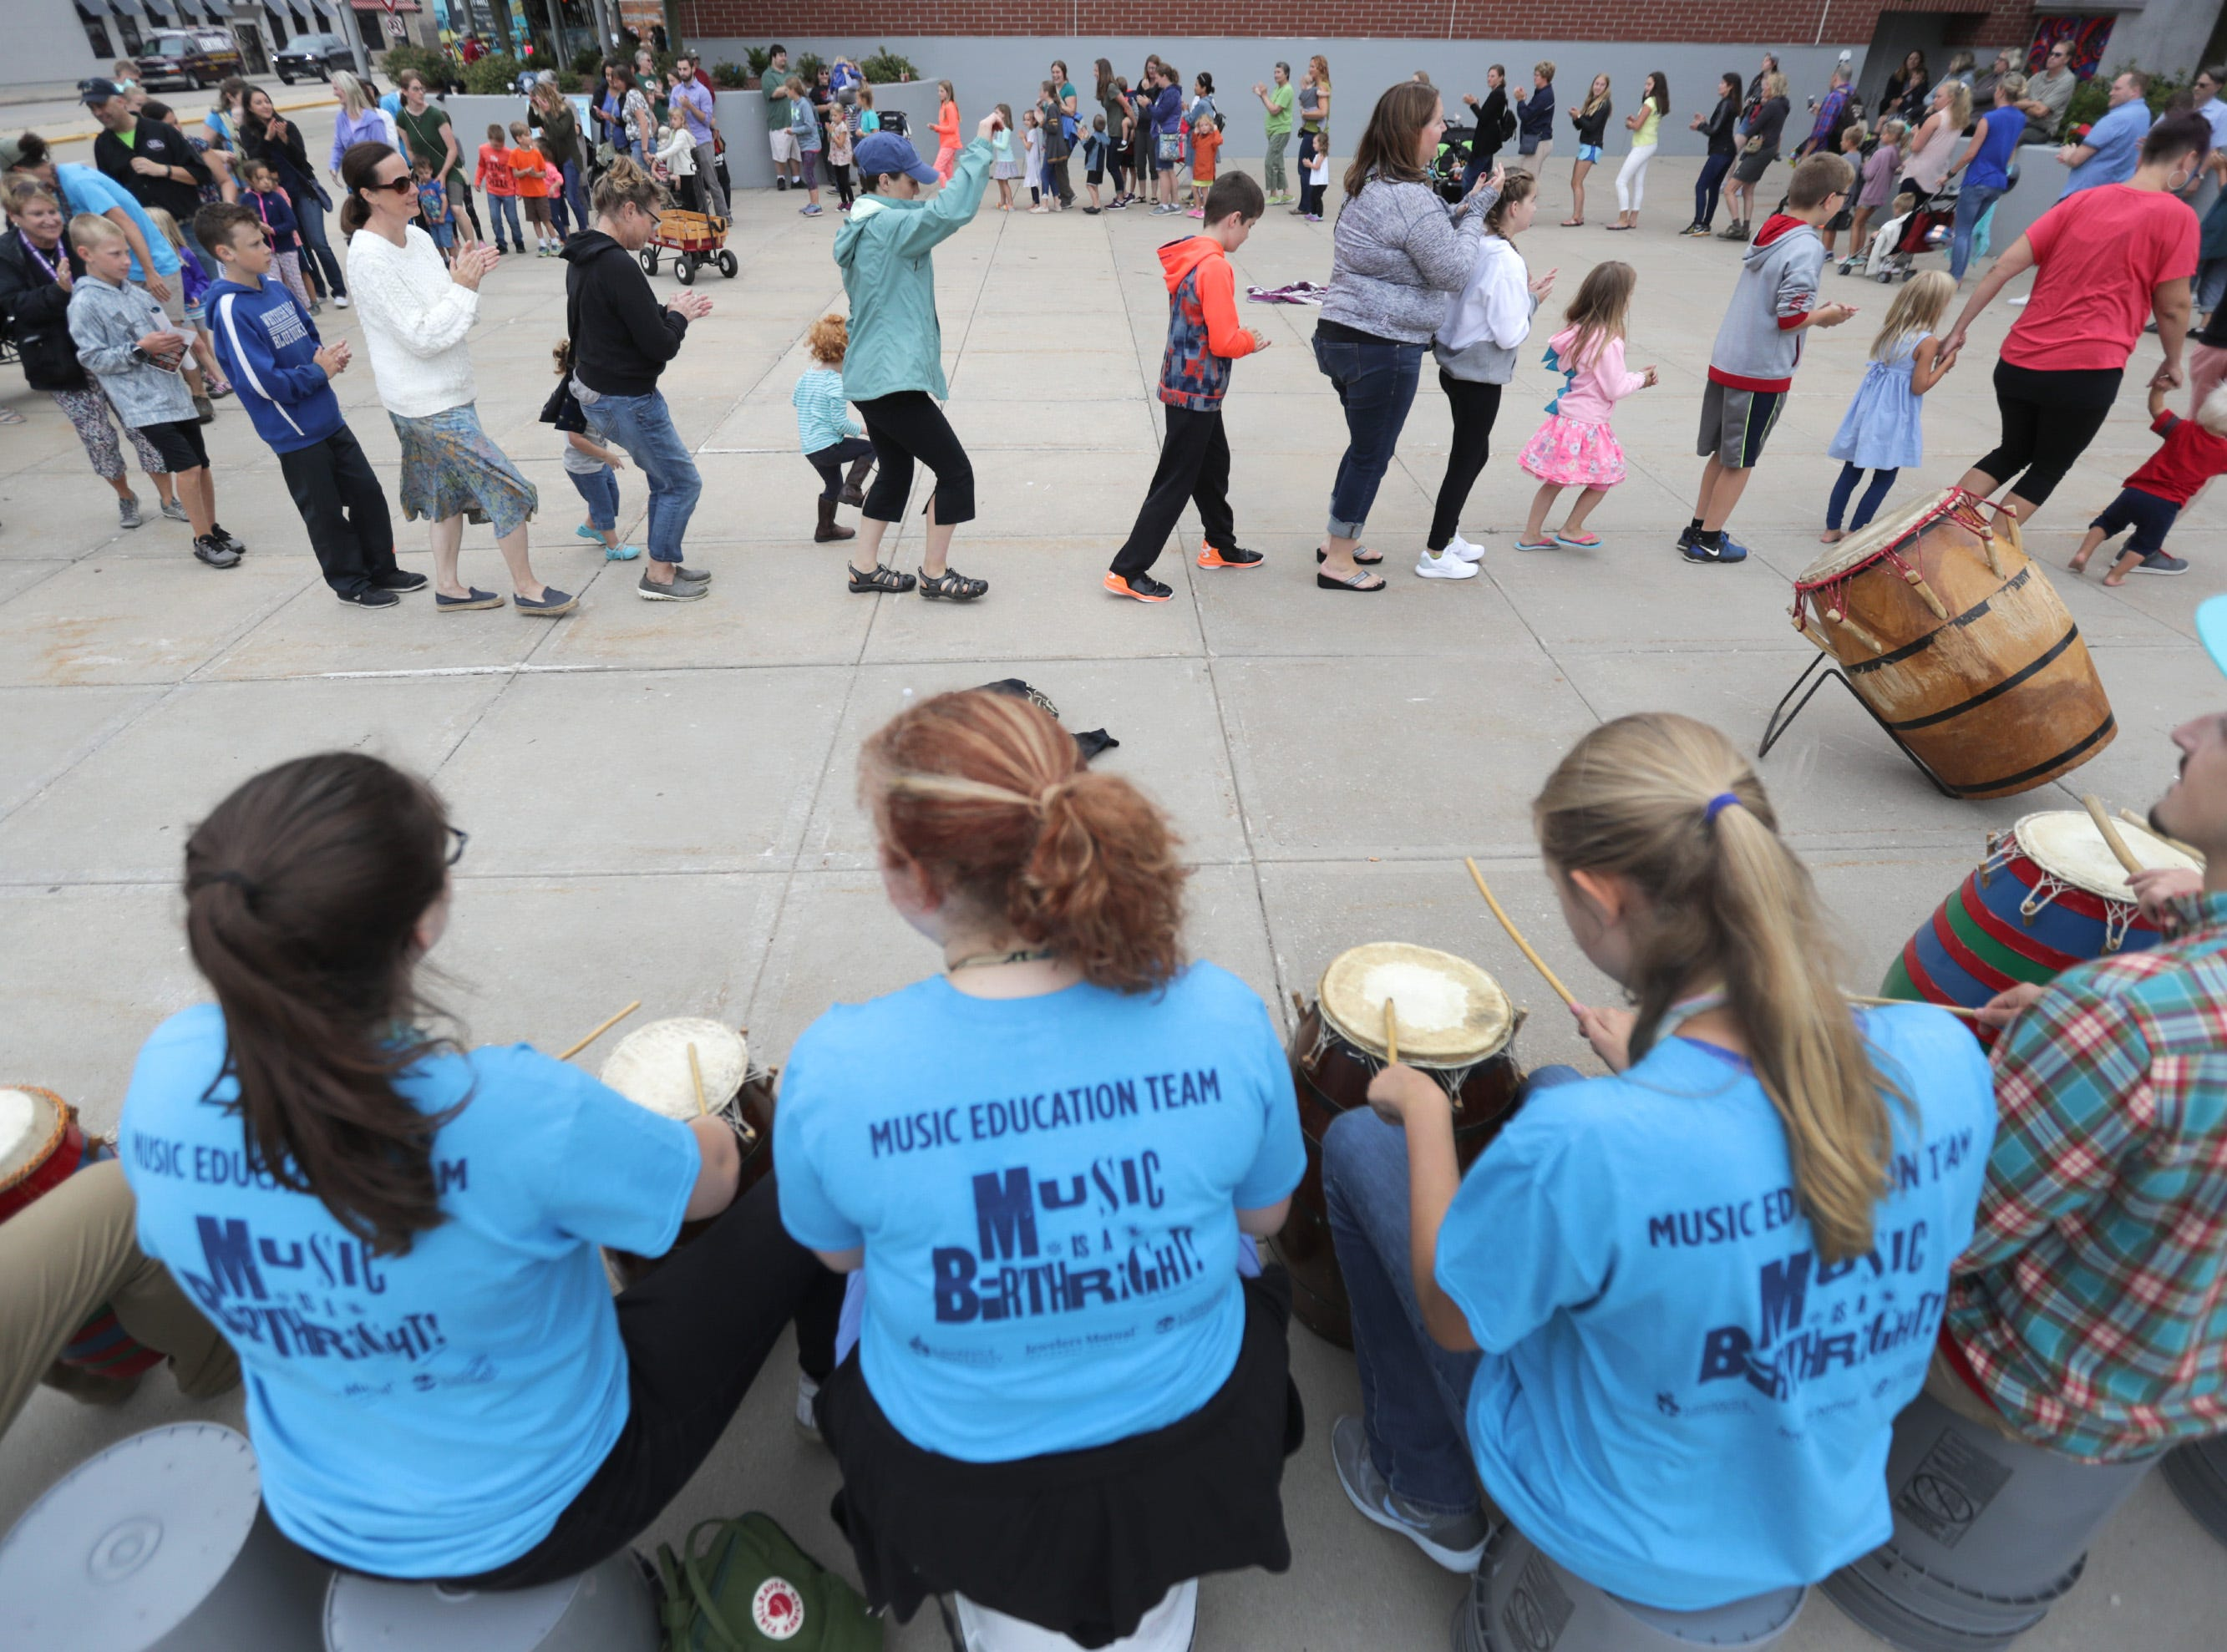 An interactive music education session of Ghanian drumming and dance at the PAC Thrivent Plaza during the Mile of Music festival Thursday, August 2, 2018, in Appleton, Wis. Wm. Glasheen/USA TODAY NETWORK-Wisconsin